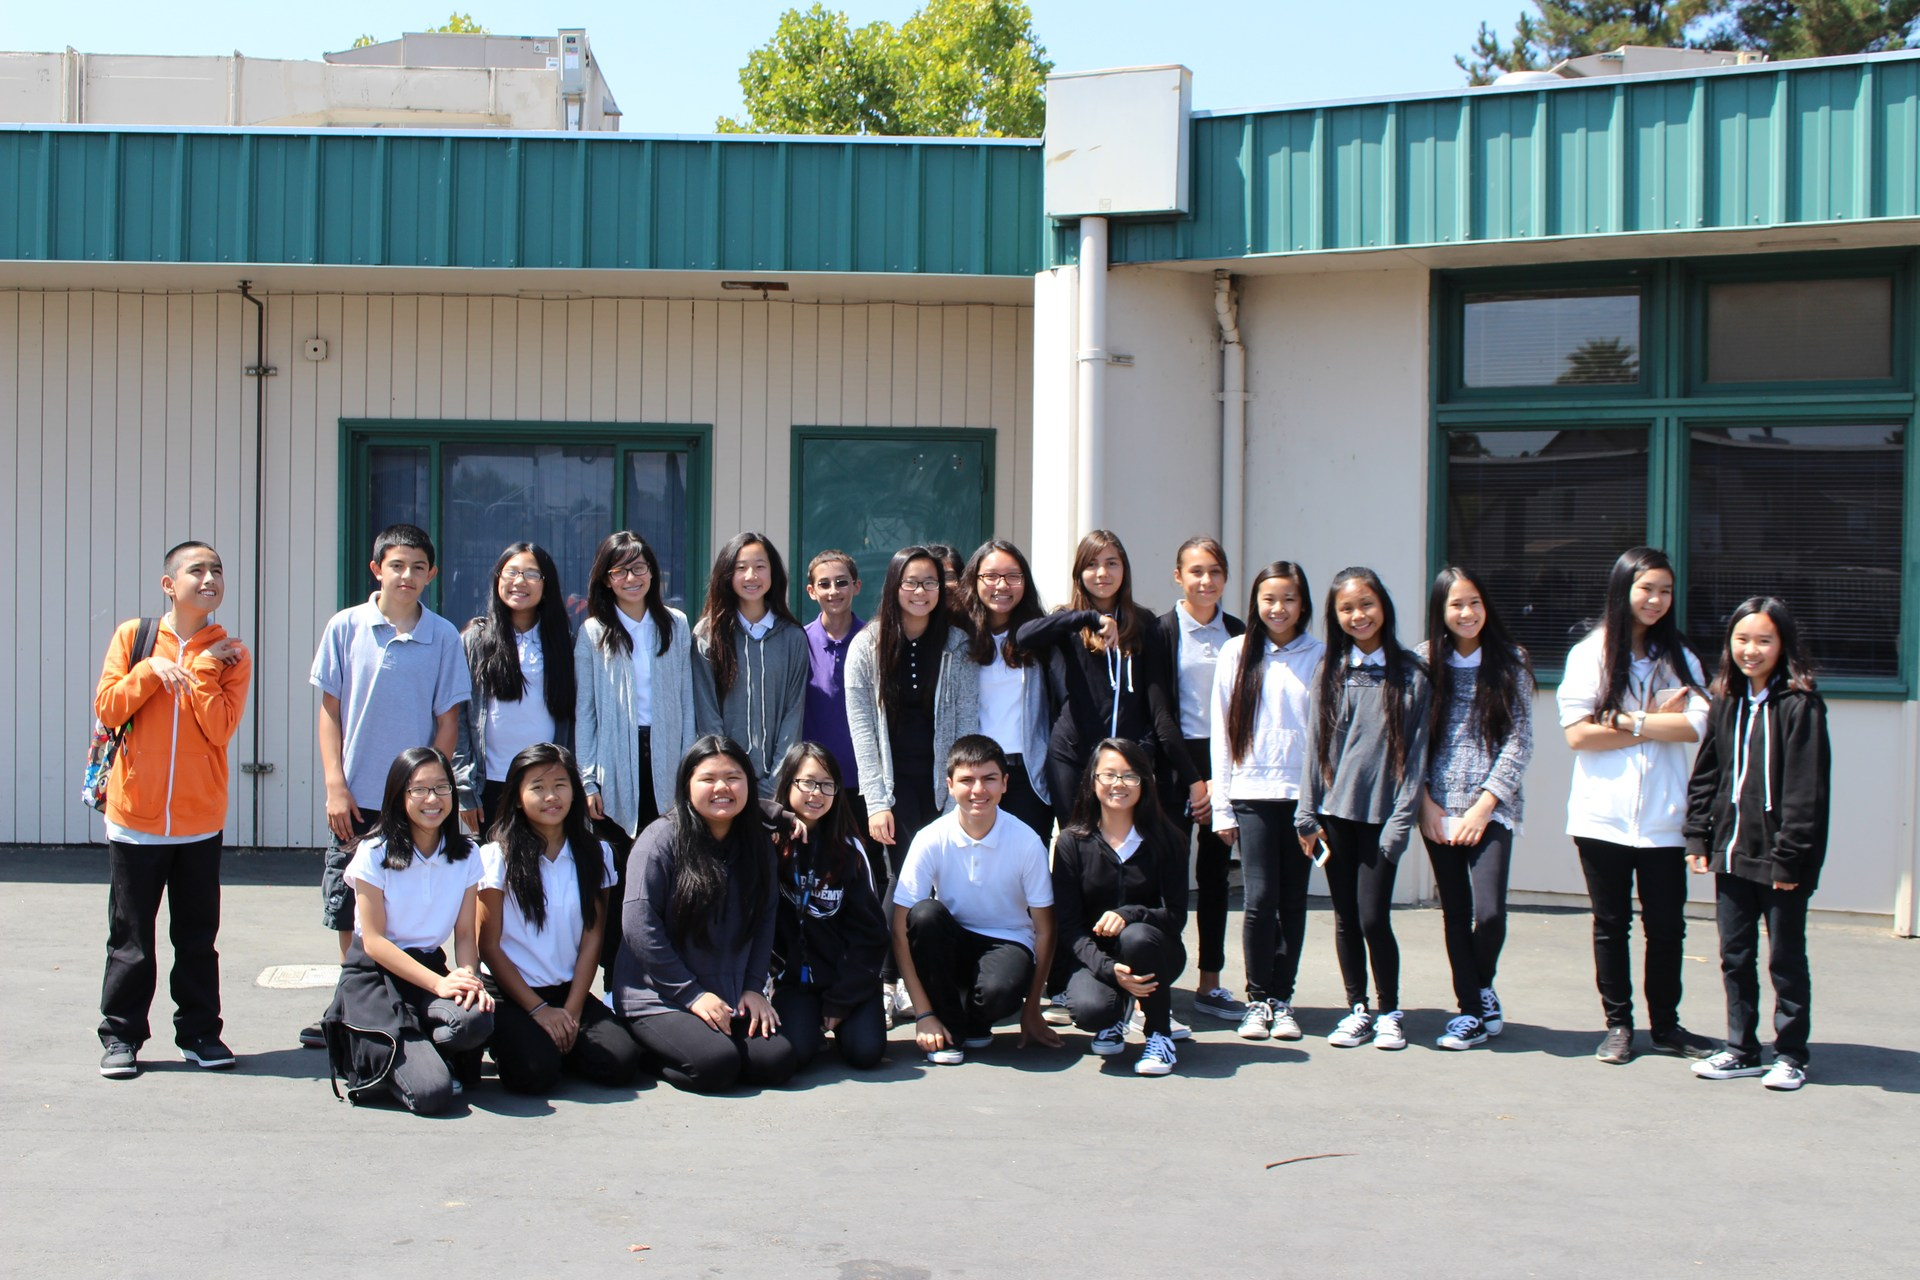 large group of students standing in front of school wall